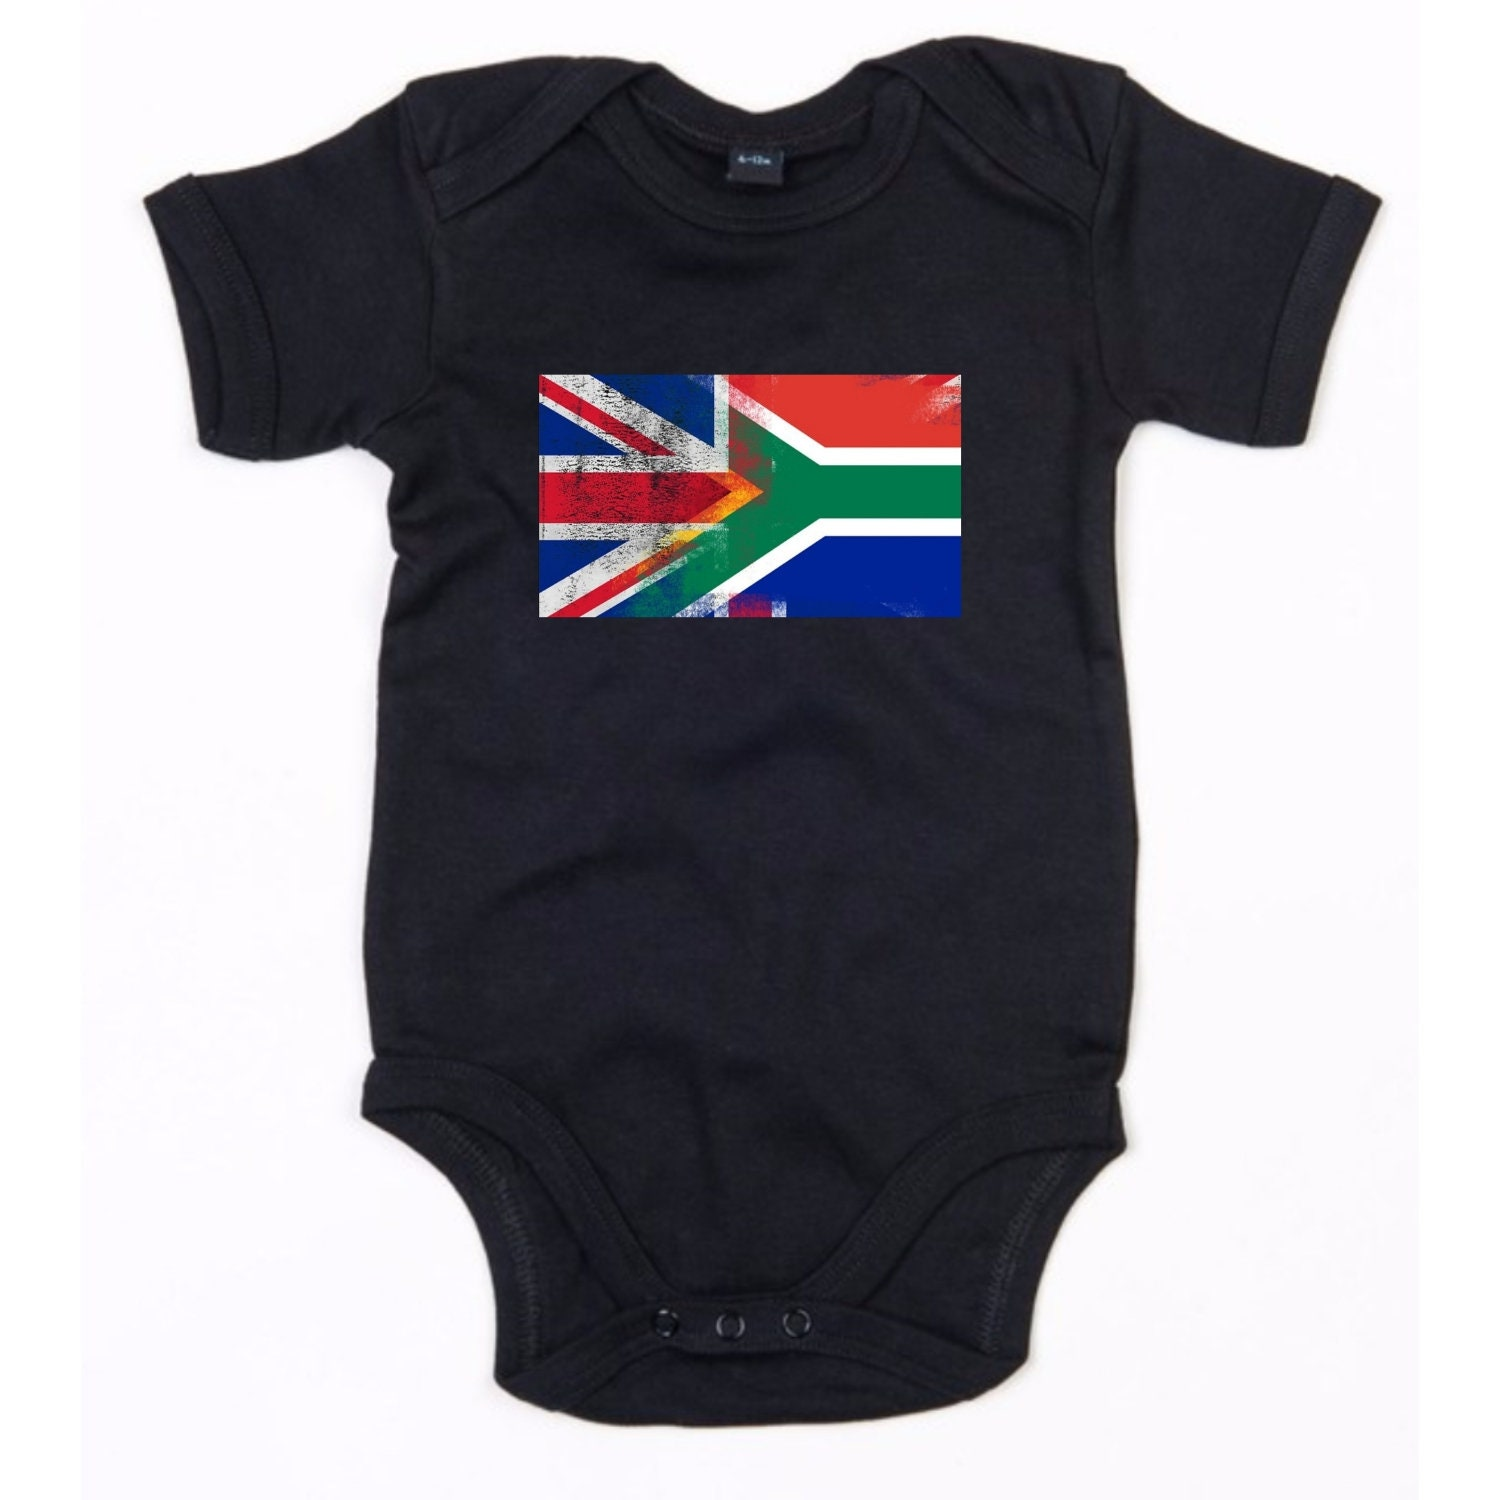 Mri-le1 Newborn Baby Coverall Ghana USA Flag Heart Baby Rompers